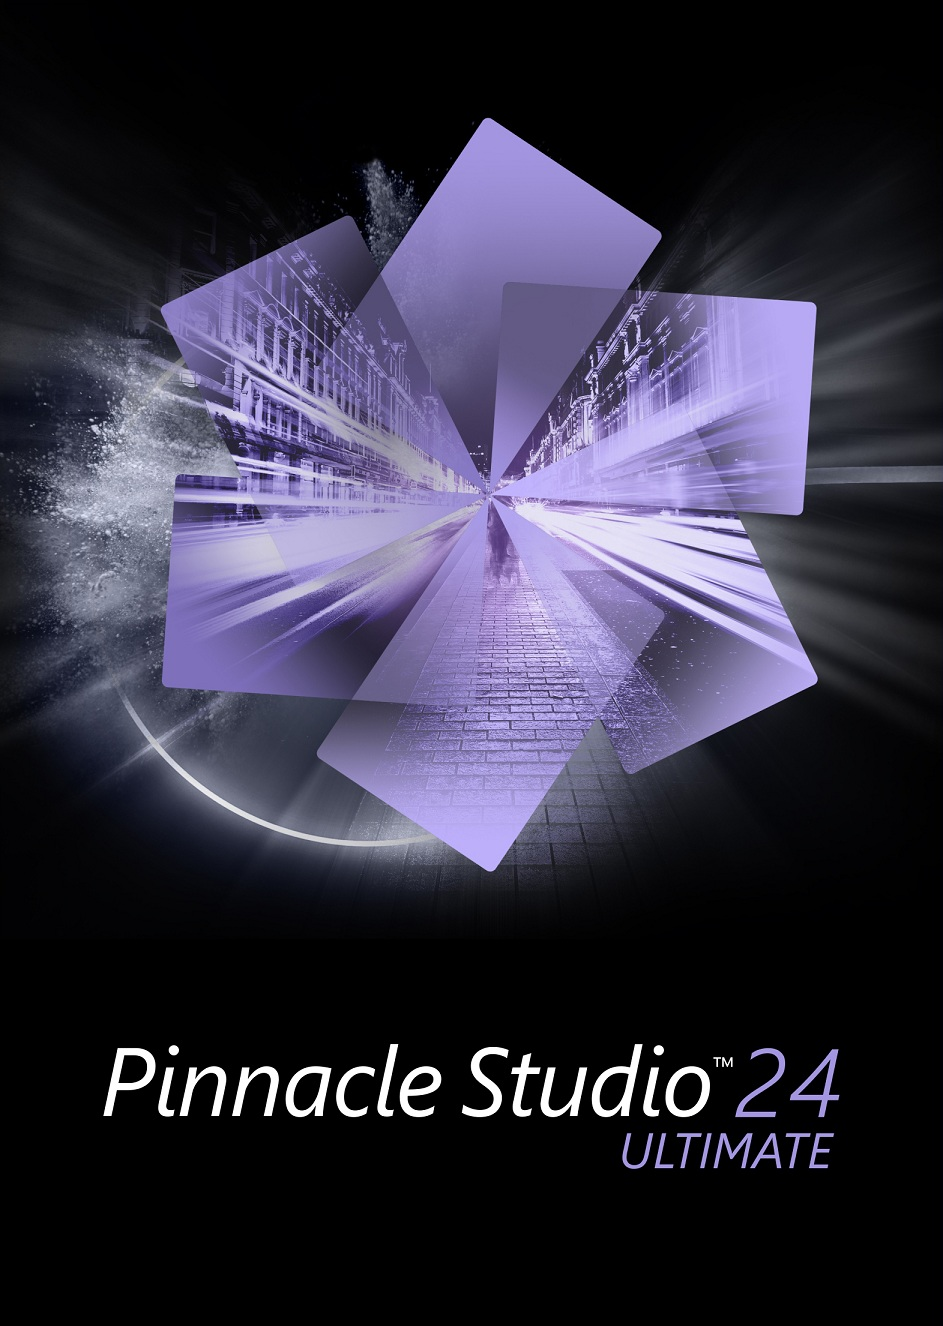 Pinnacle Studio 24 Ultimate Edu License (2-50)